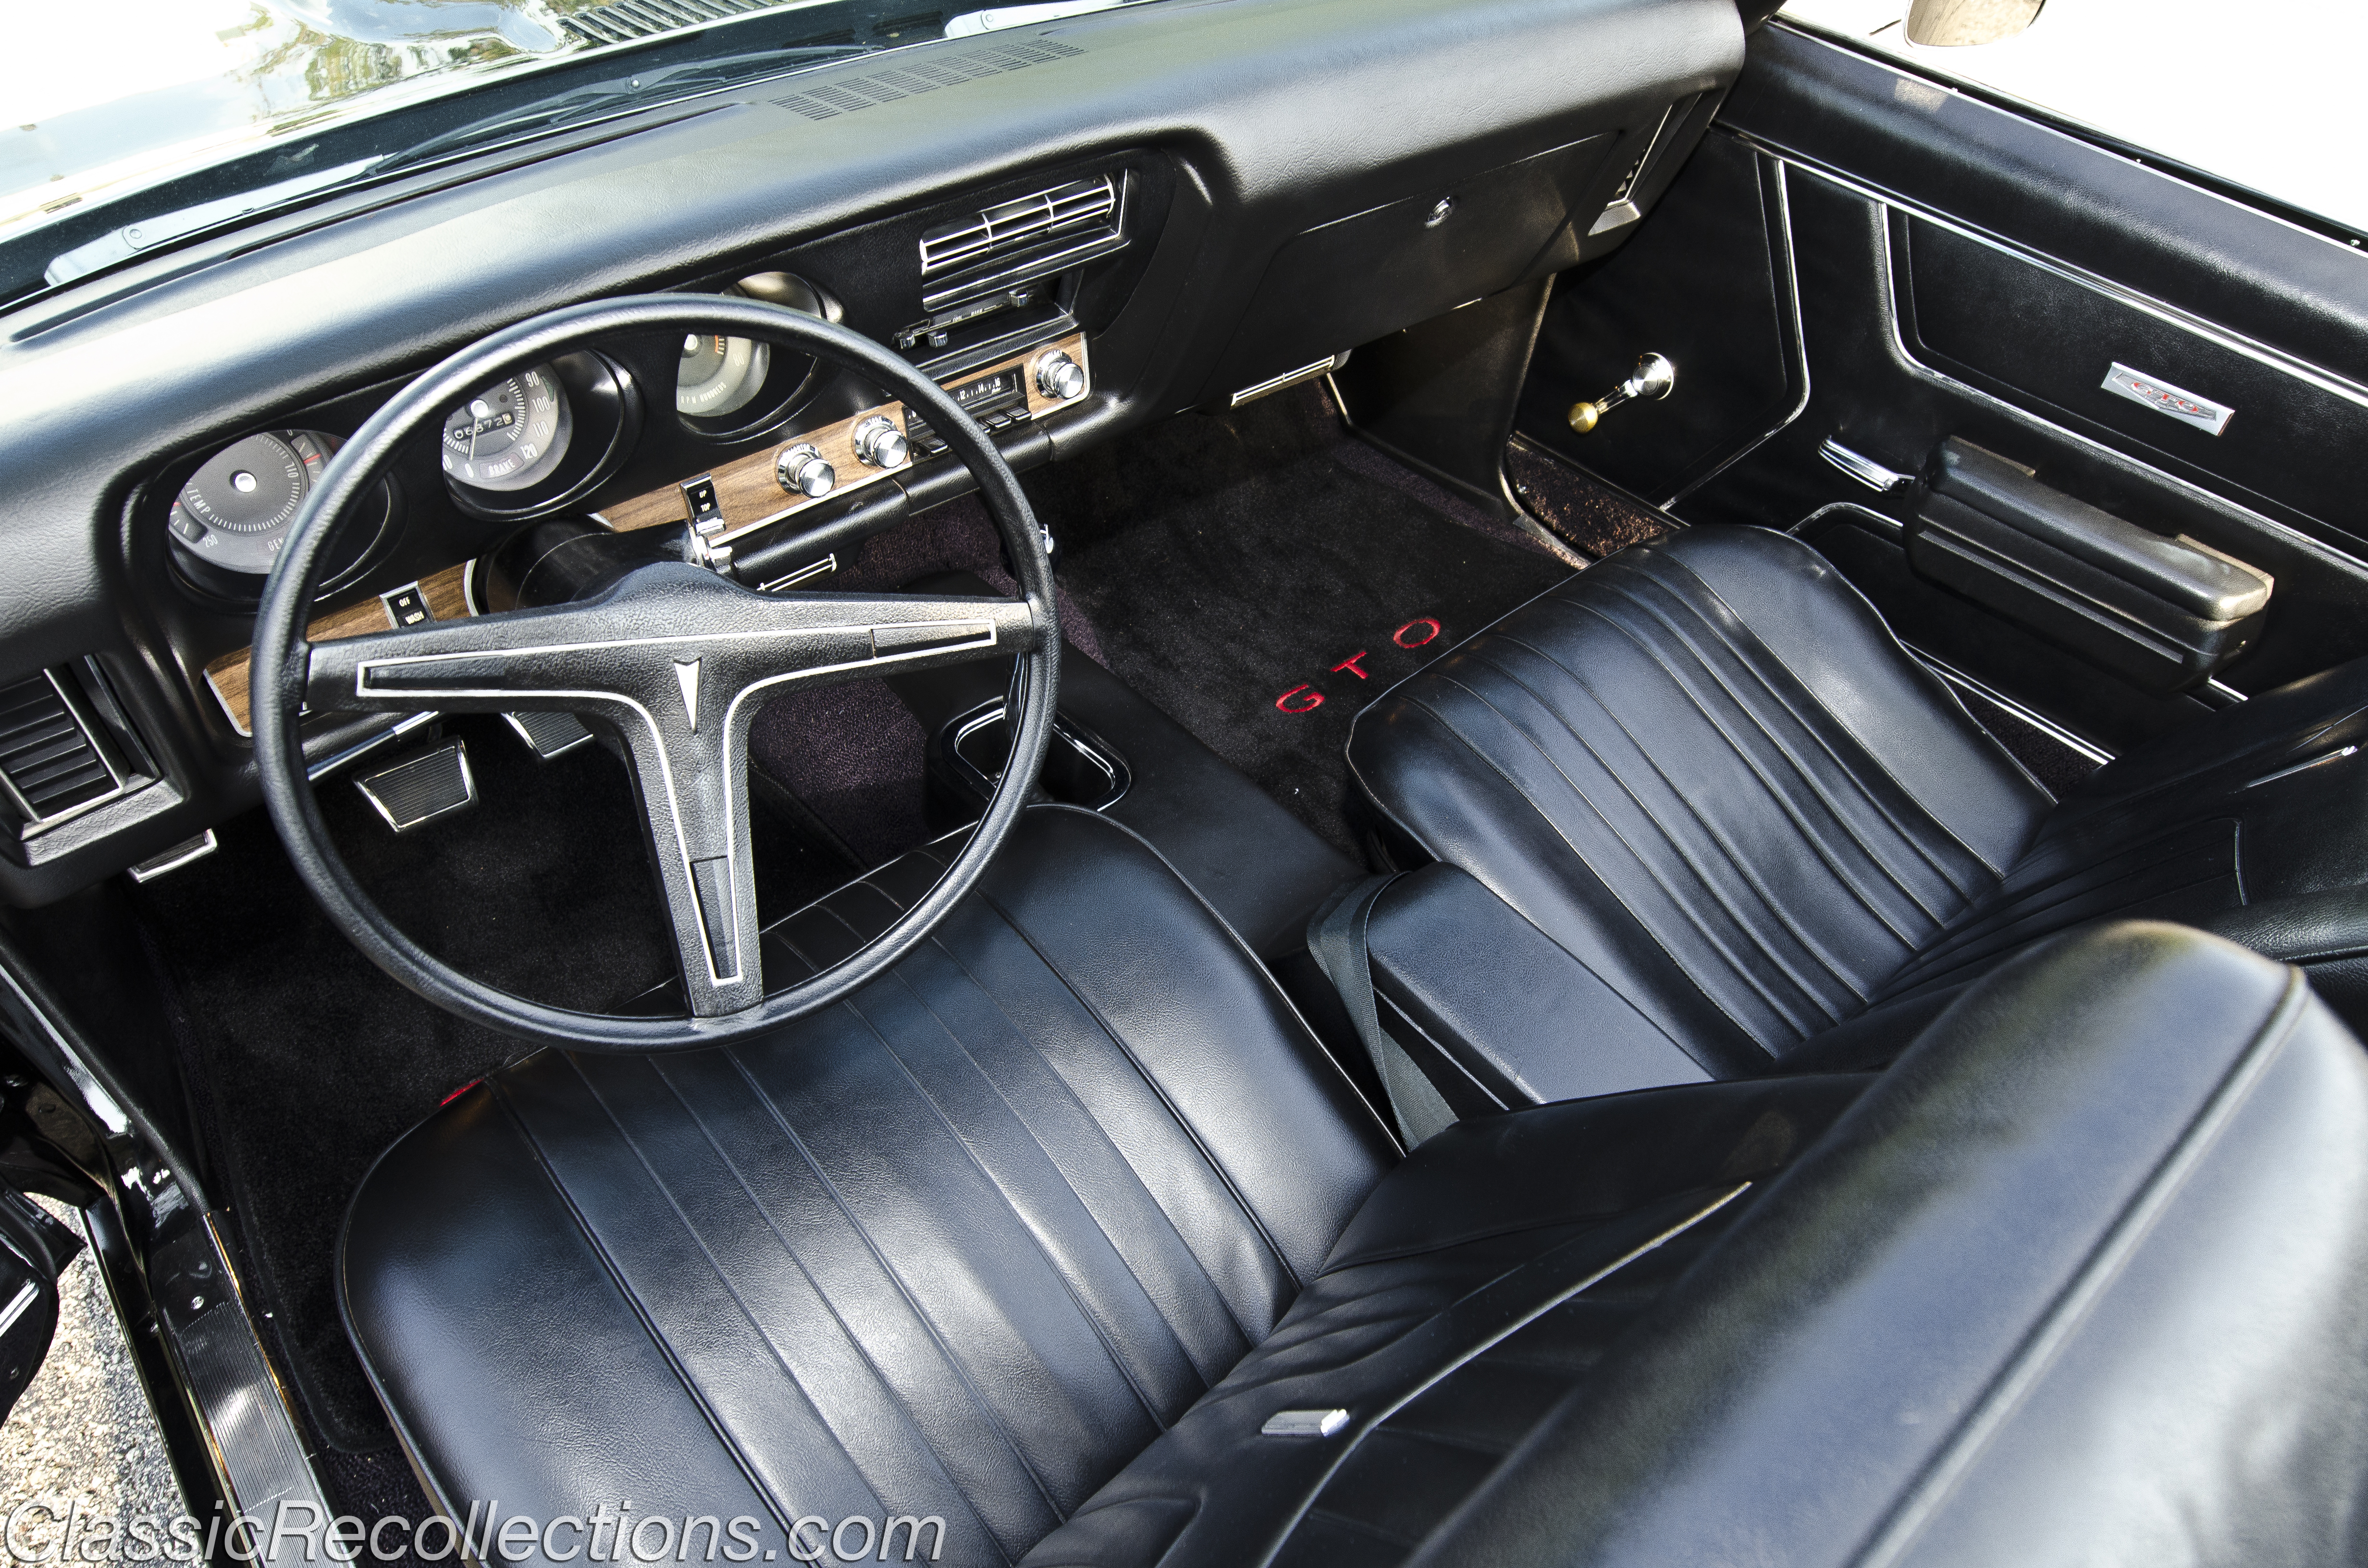 feature 1969 pontiac gto classic recollections rh classicrecollections com pontiac vibe manual transmission problems pontiac manual transmission for sale